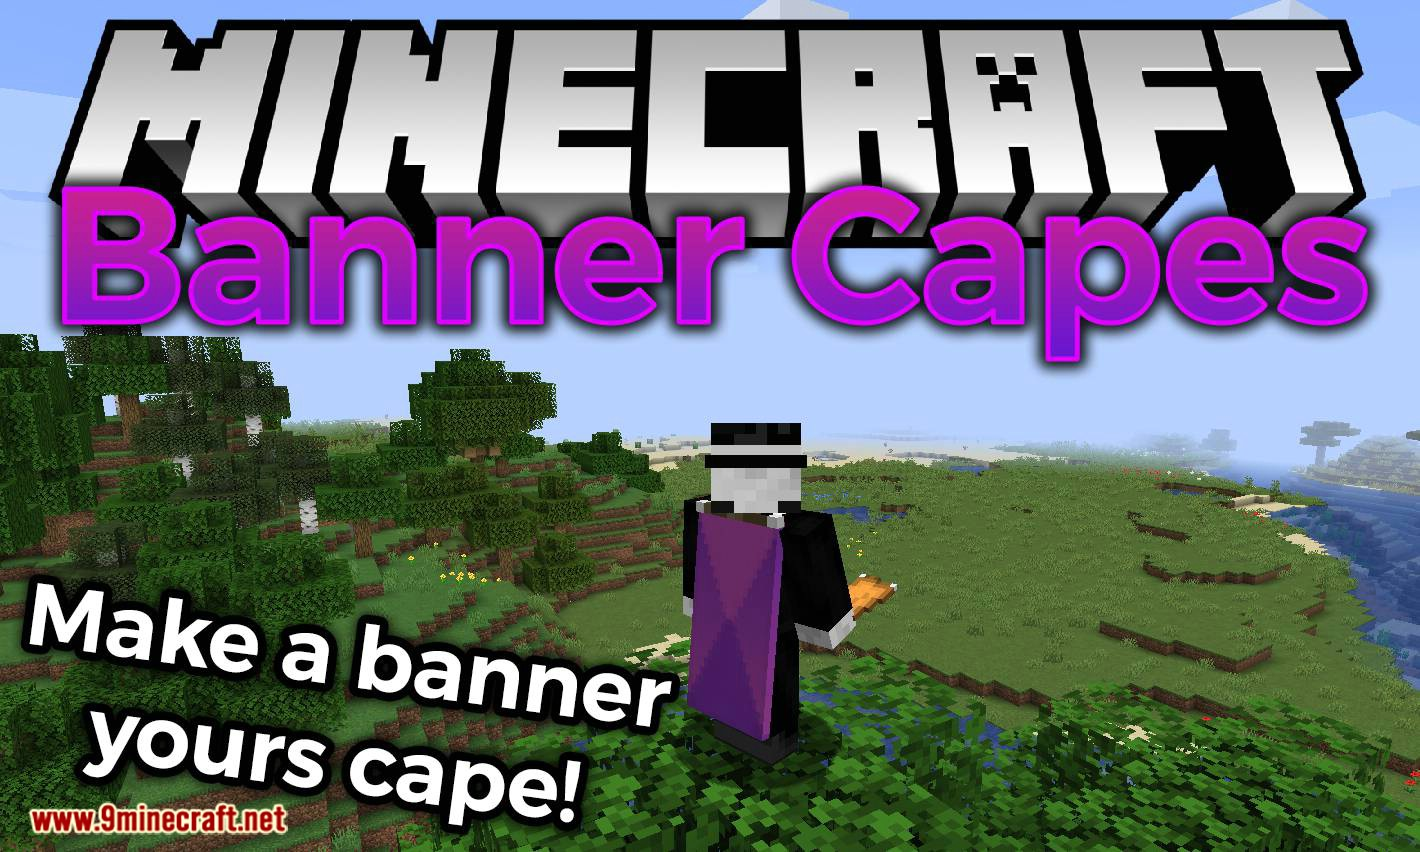 Banner Capes Mod 1 15 2 Make A Banner Yours Cape 9minecraft Net